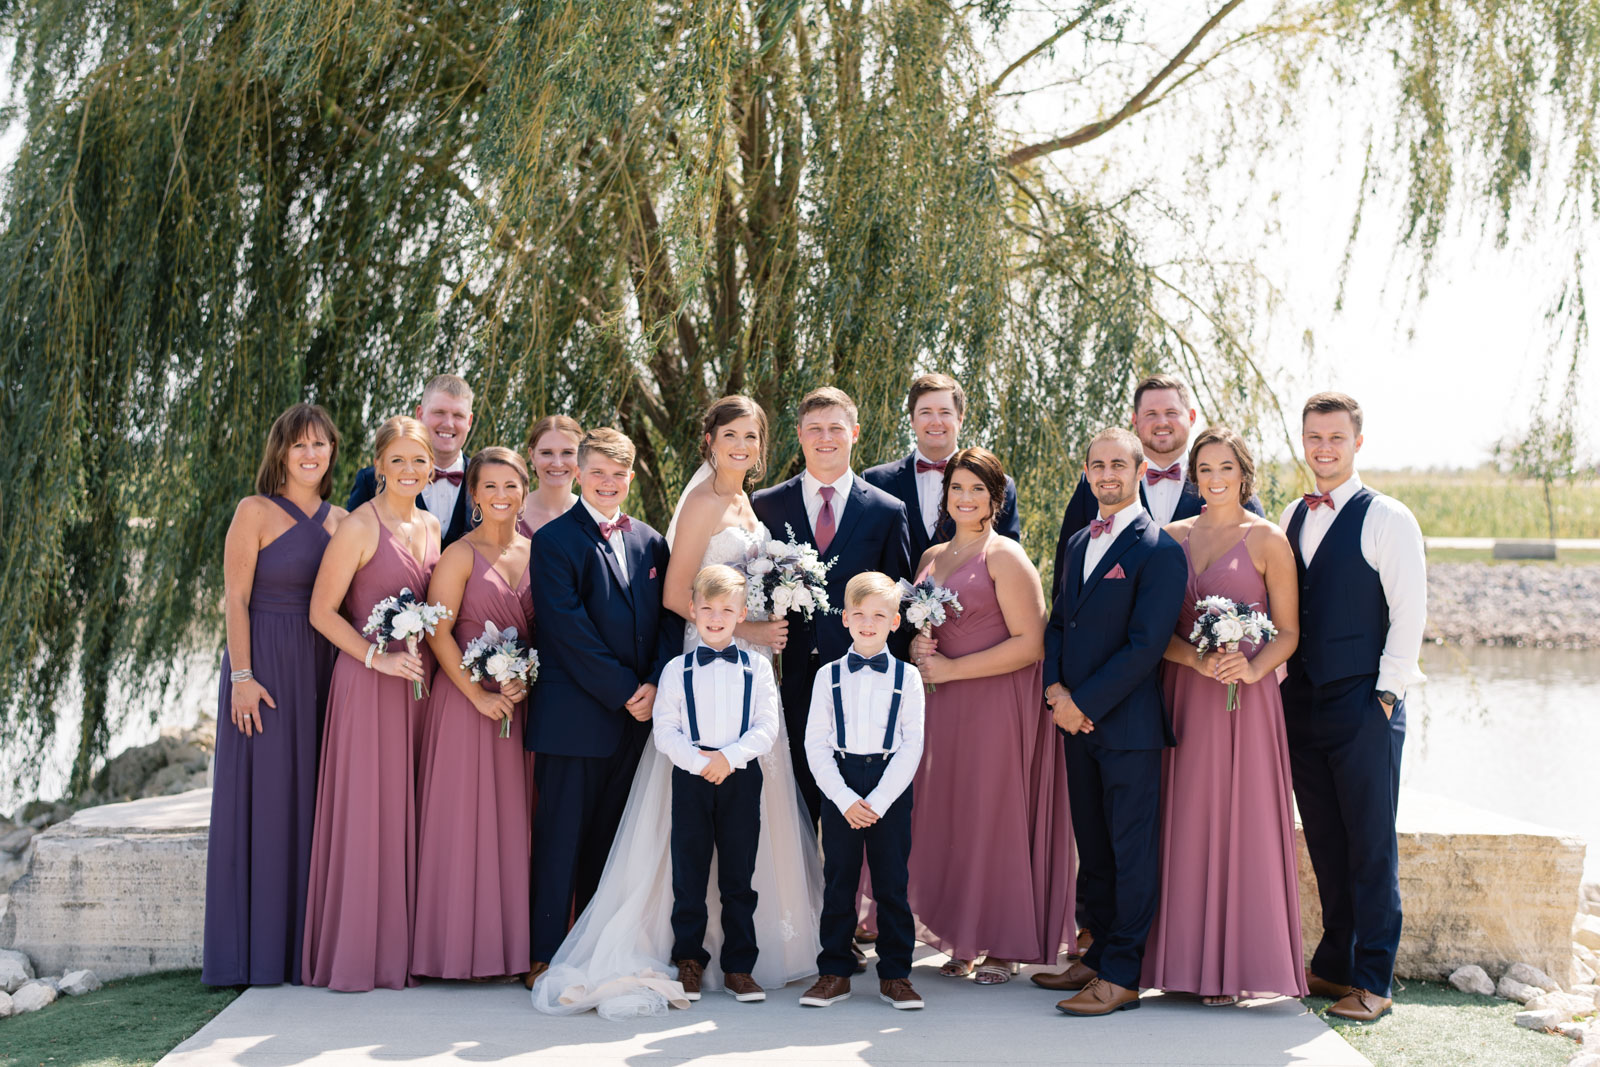 bridal party by willow tree epic event center wedding venue